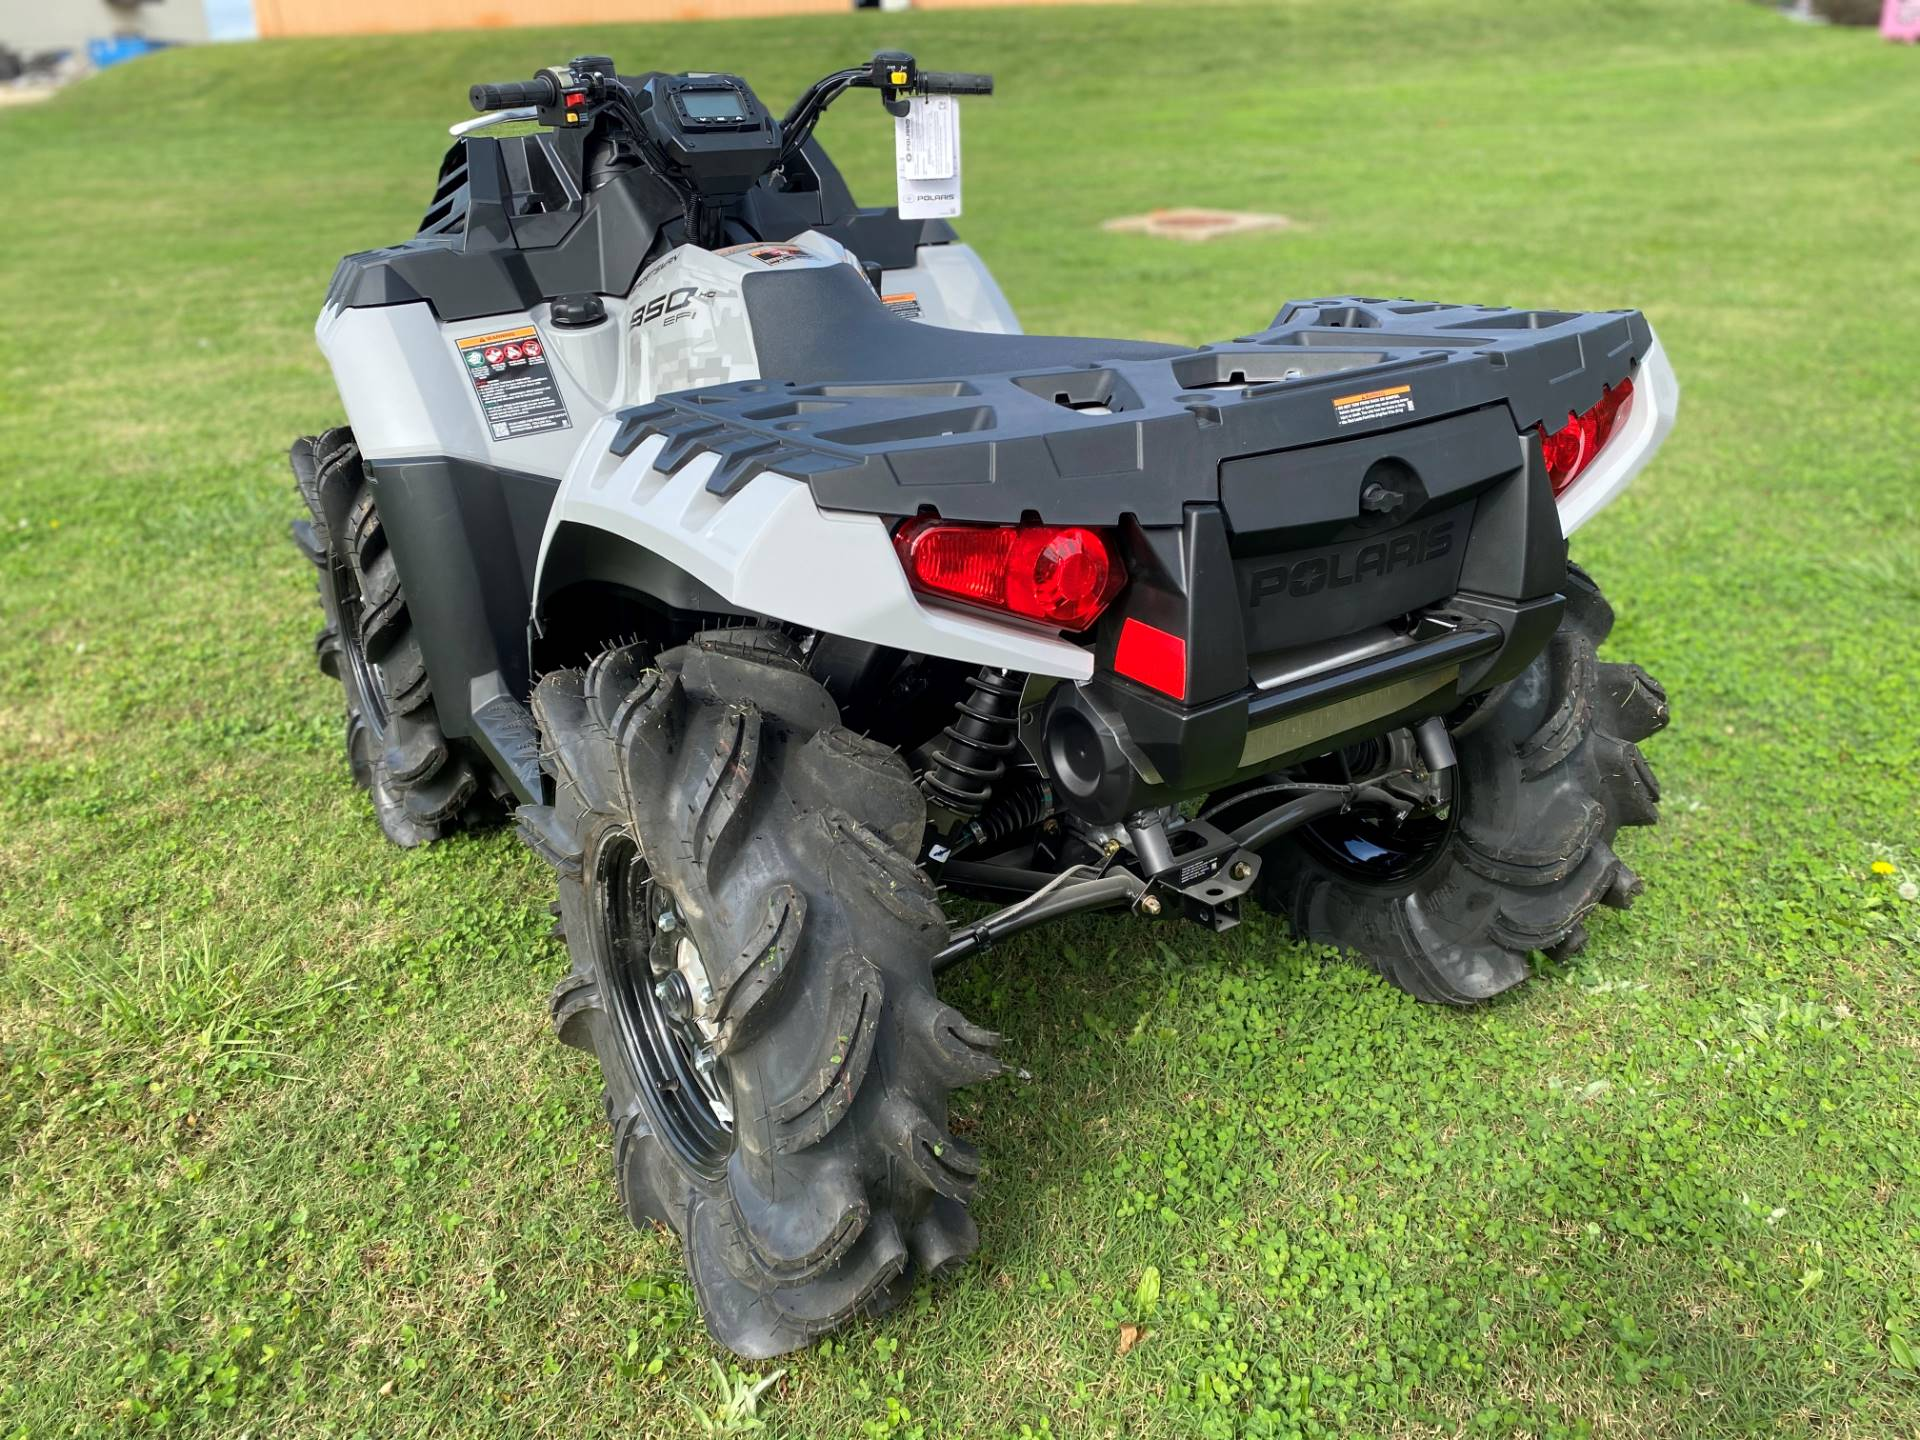 2021 Polaris Sportsman 850 High Lifter Edition in Greer, South Carolina - Photo 7